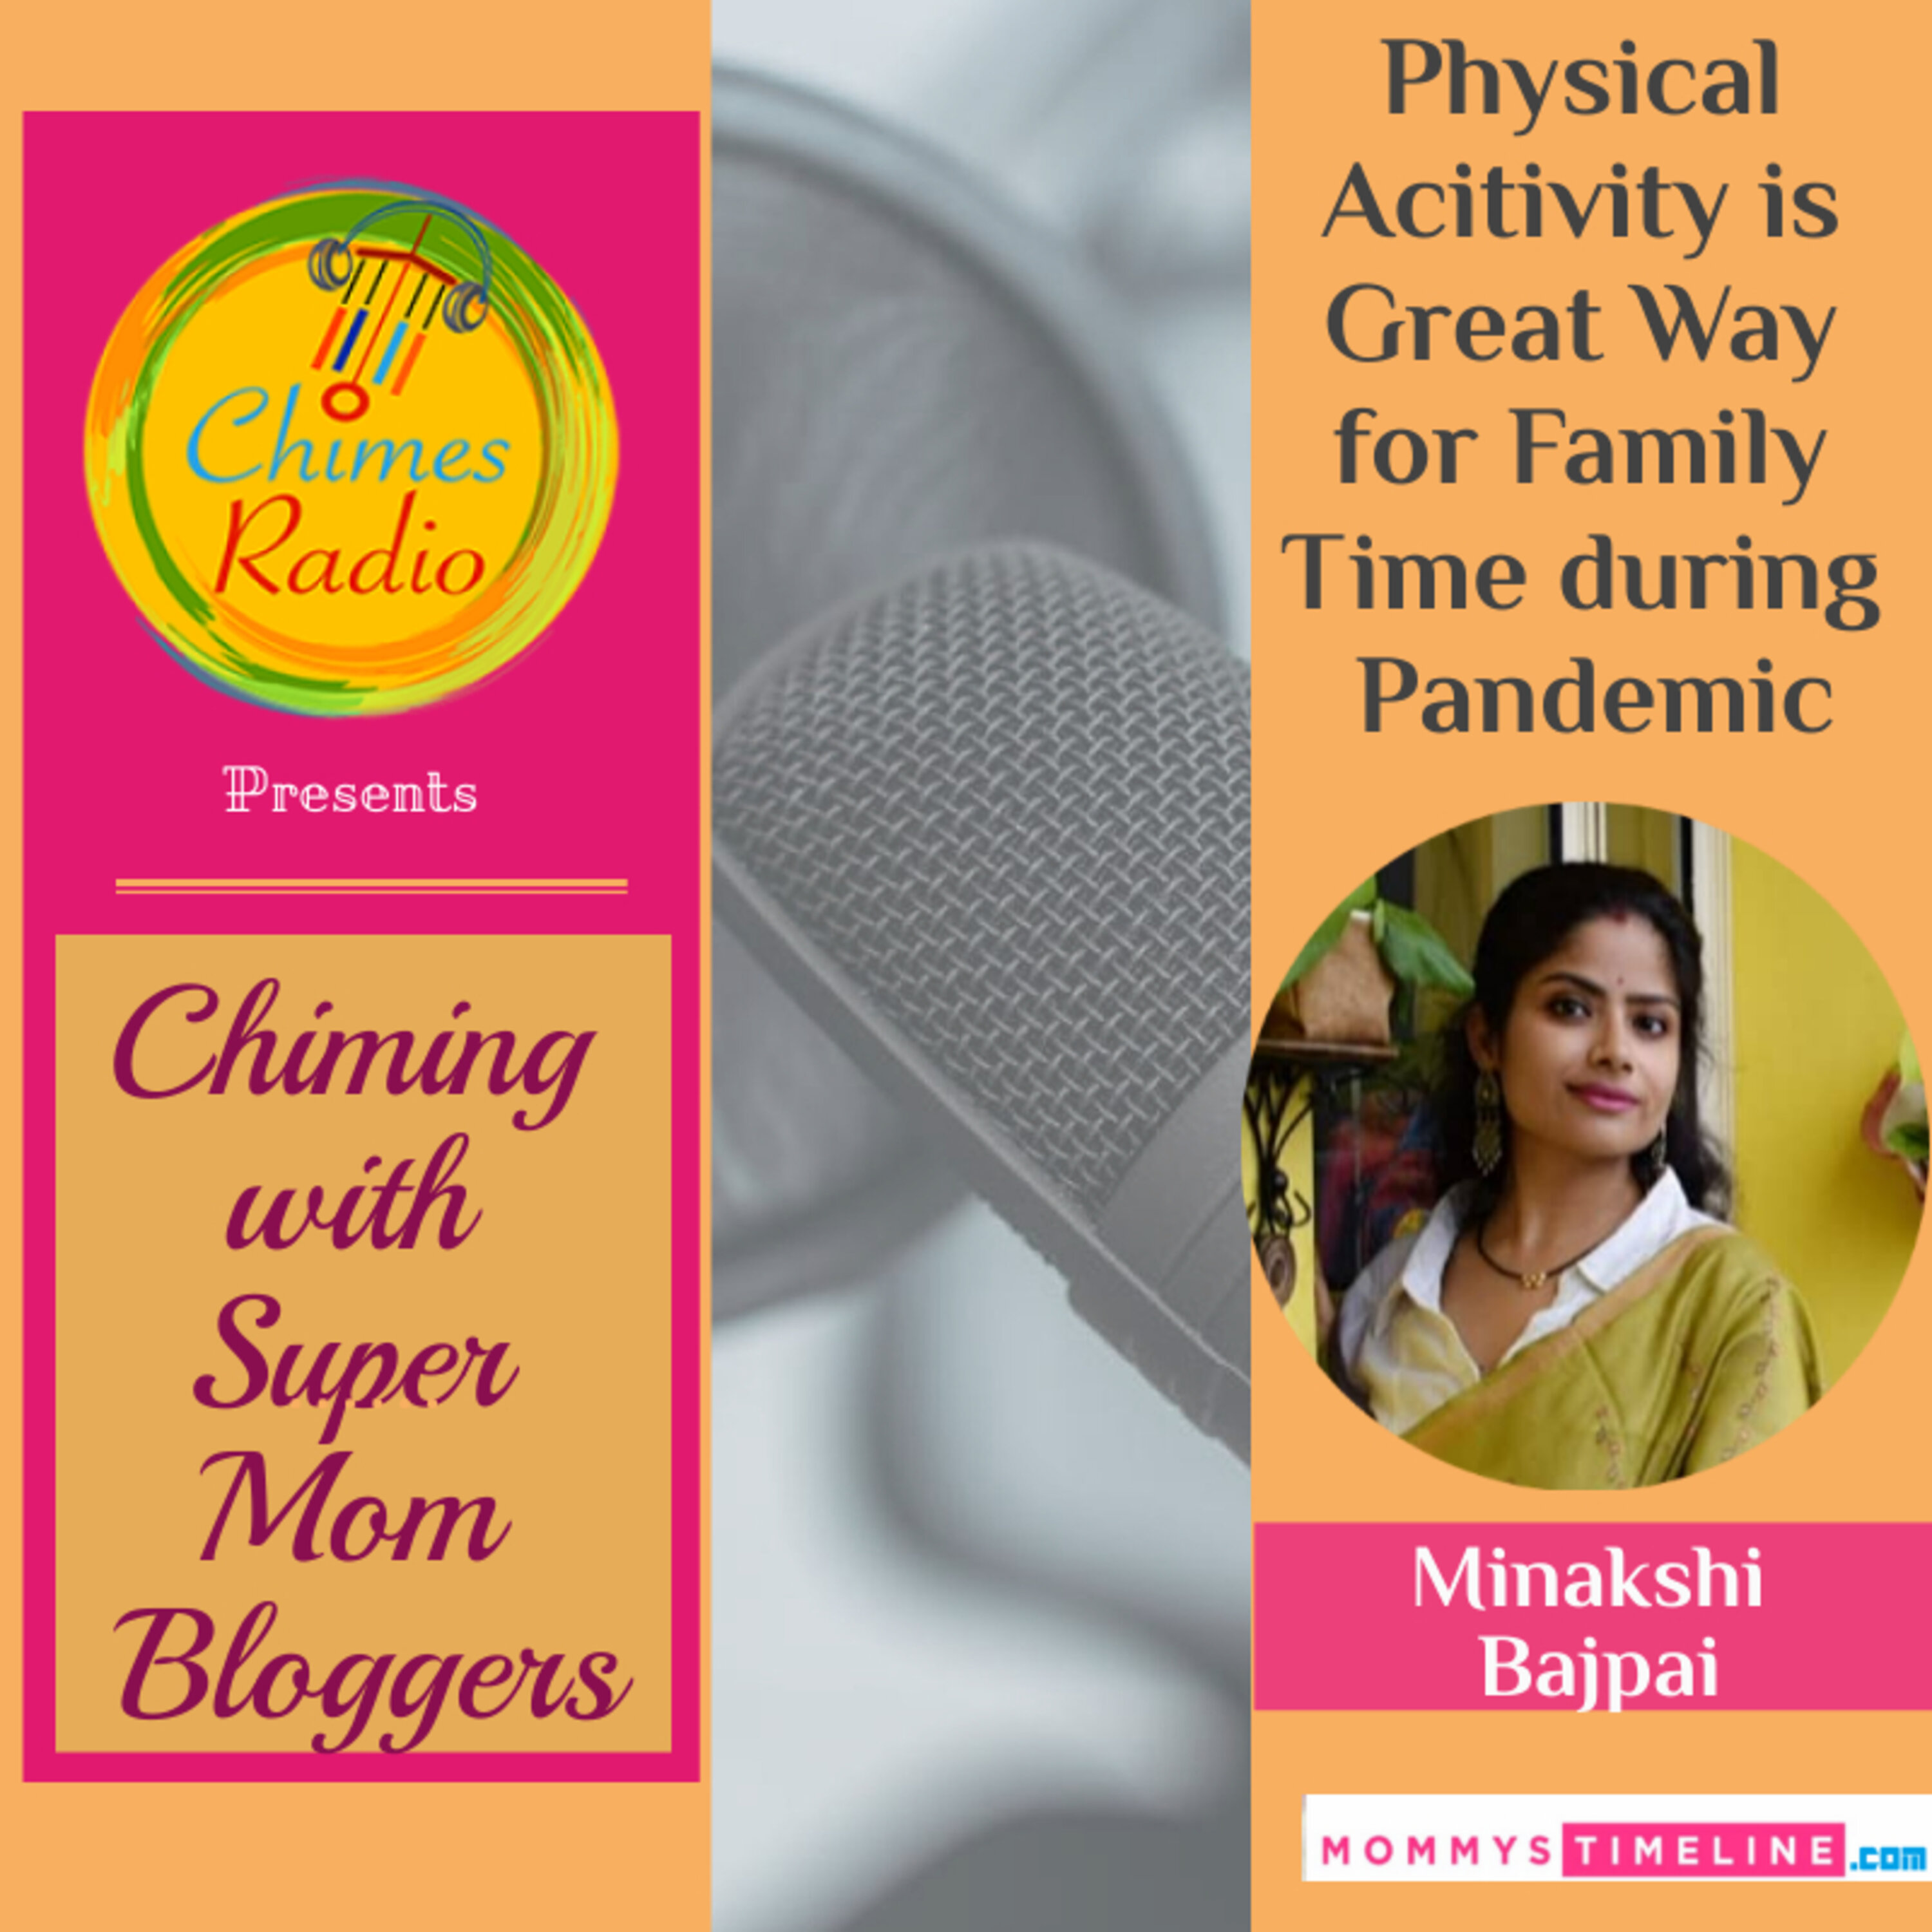 Super Mom Bloggers - Physical Activity For Great Family Time